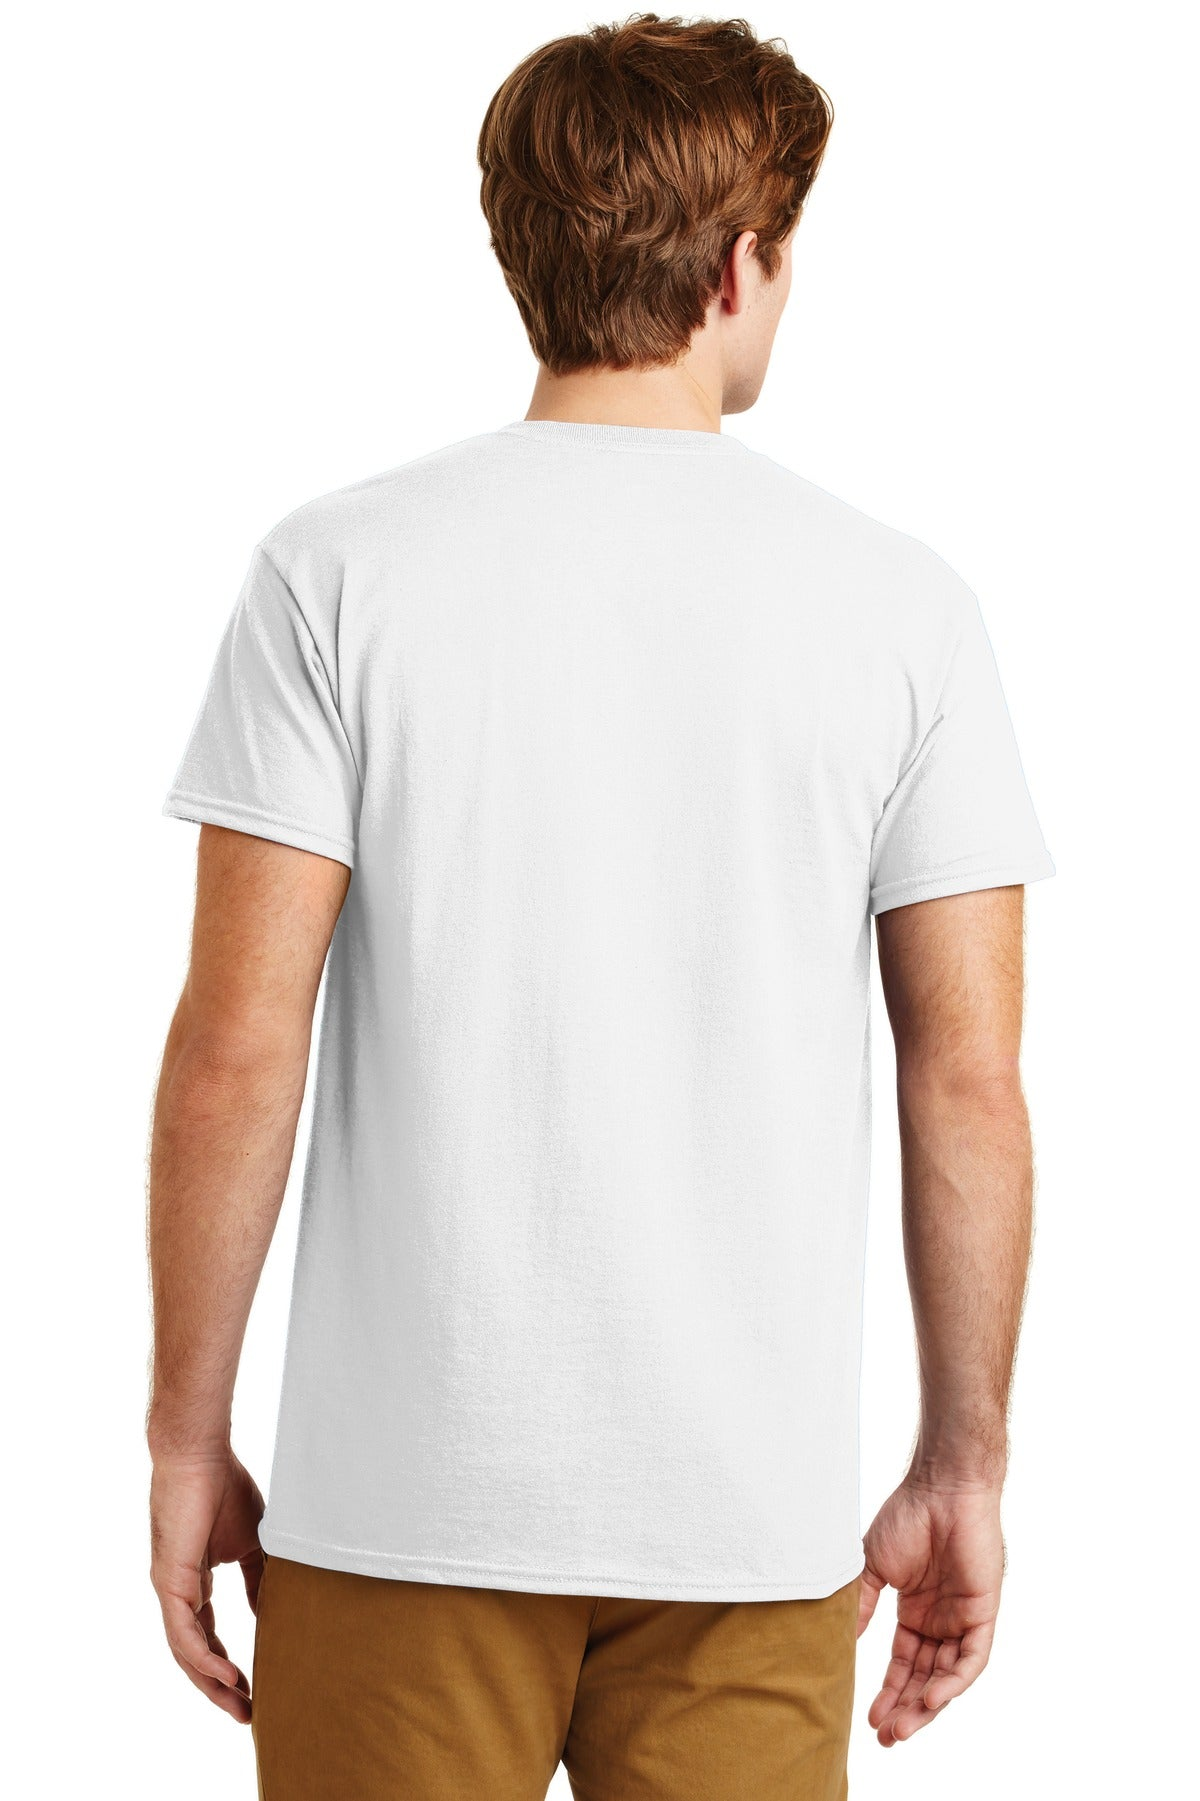 White Gildan DryBlend 50 Cotton/50 Poly Pocket T-Shirt.